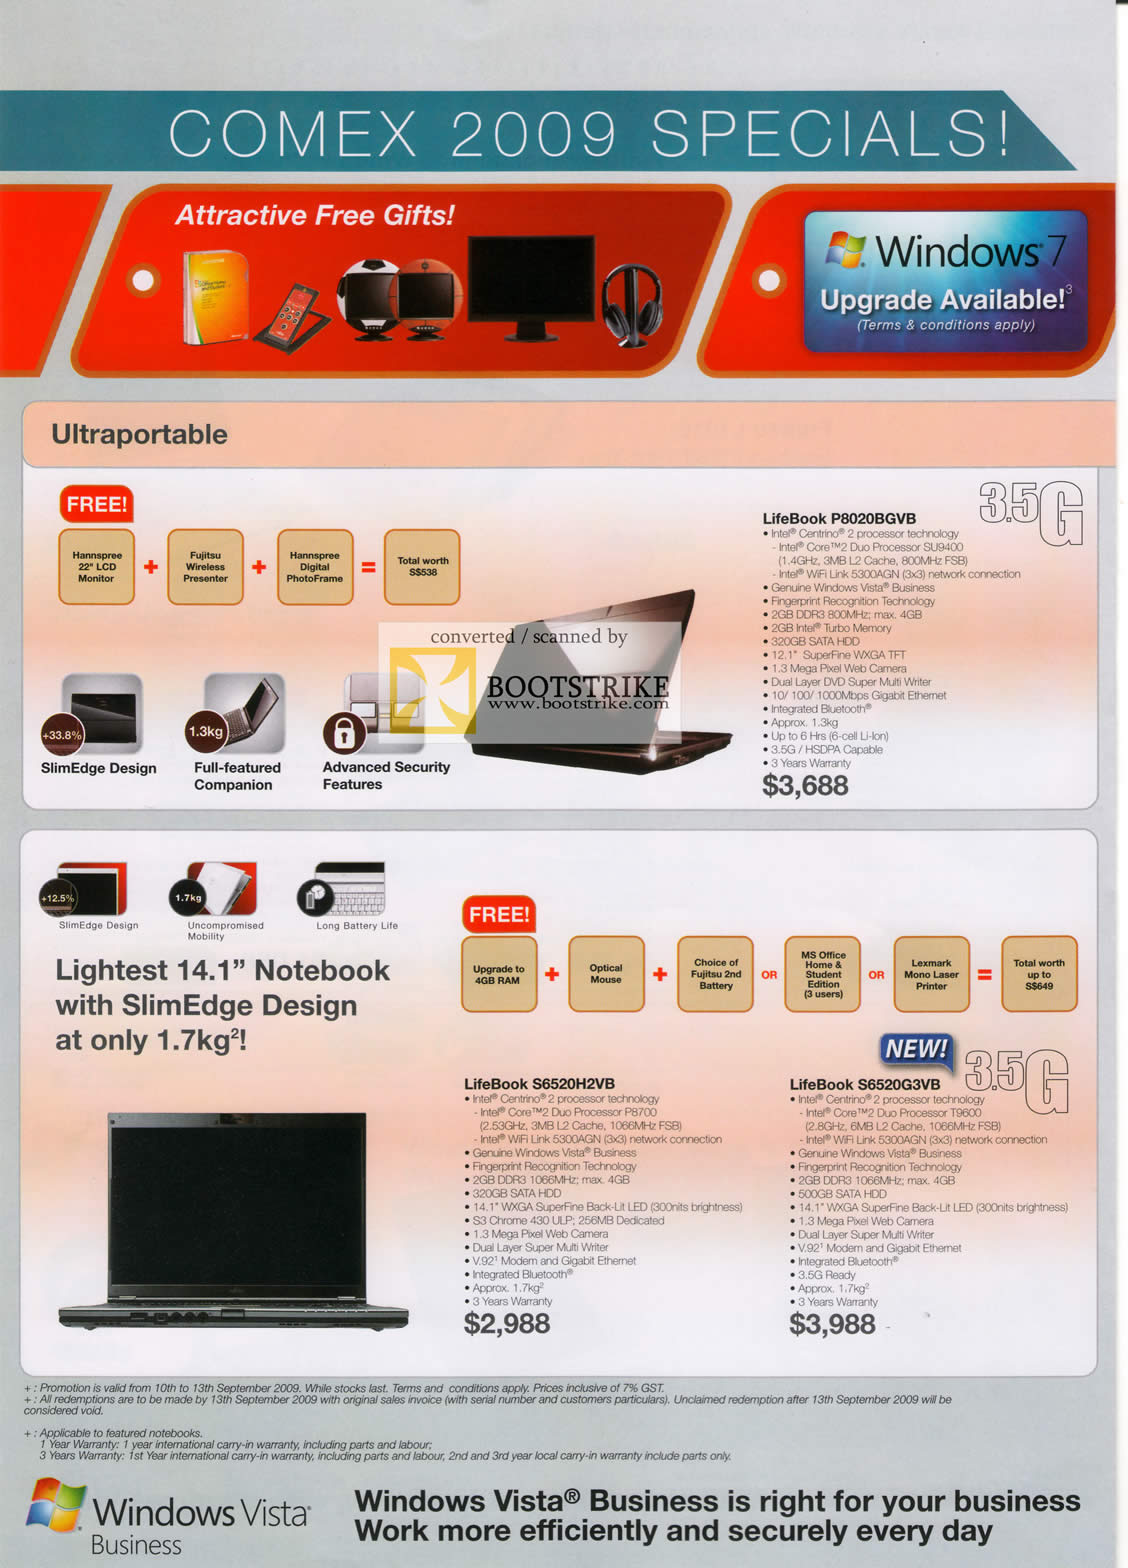 Comex 2009 price list image brochure of Fujitsu Notebooks LifeBook P8020BGVB S6520H2VB S6520G3VB SlimEdge